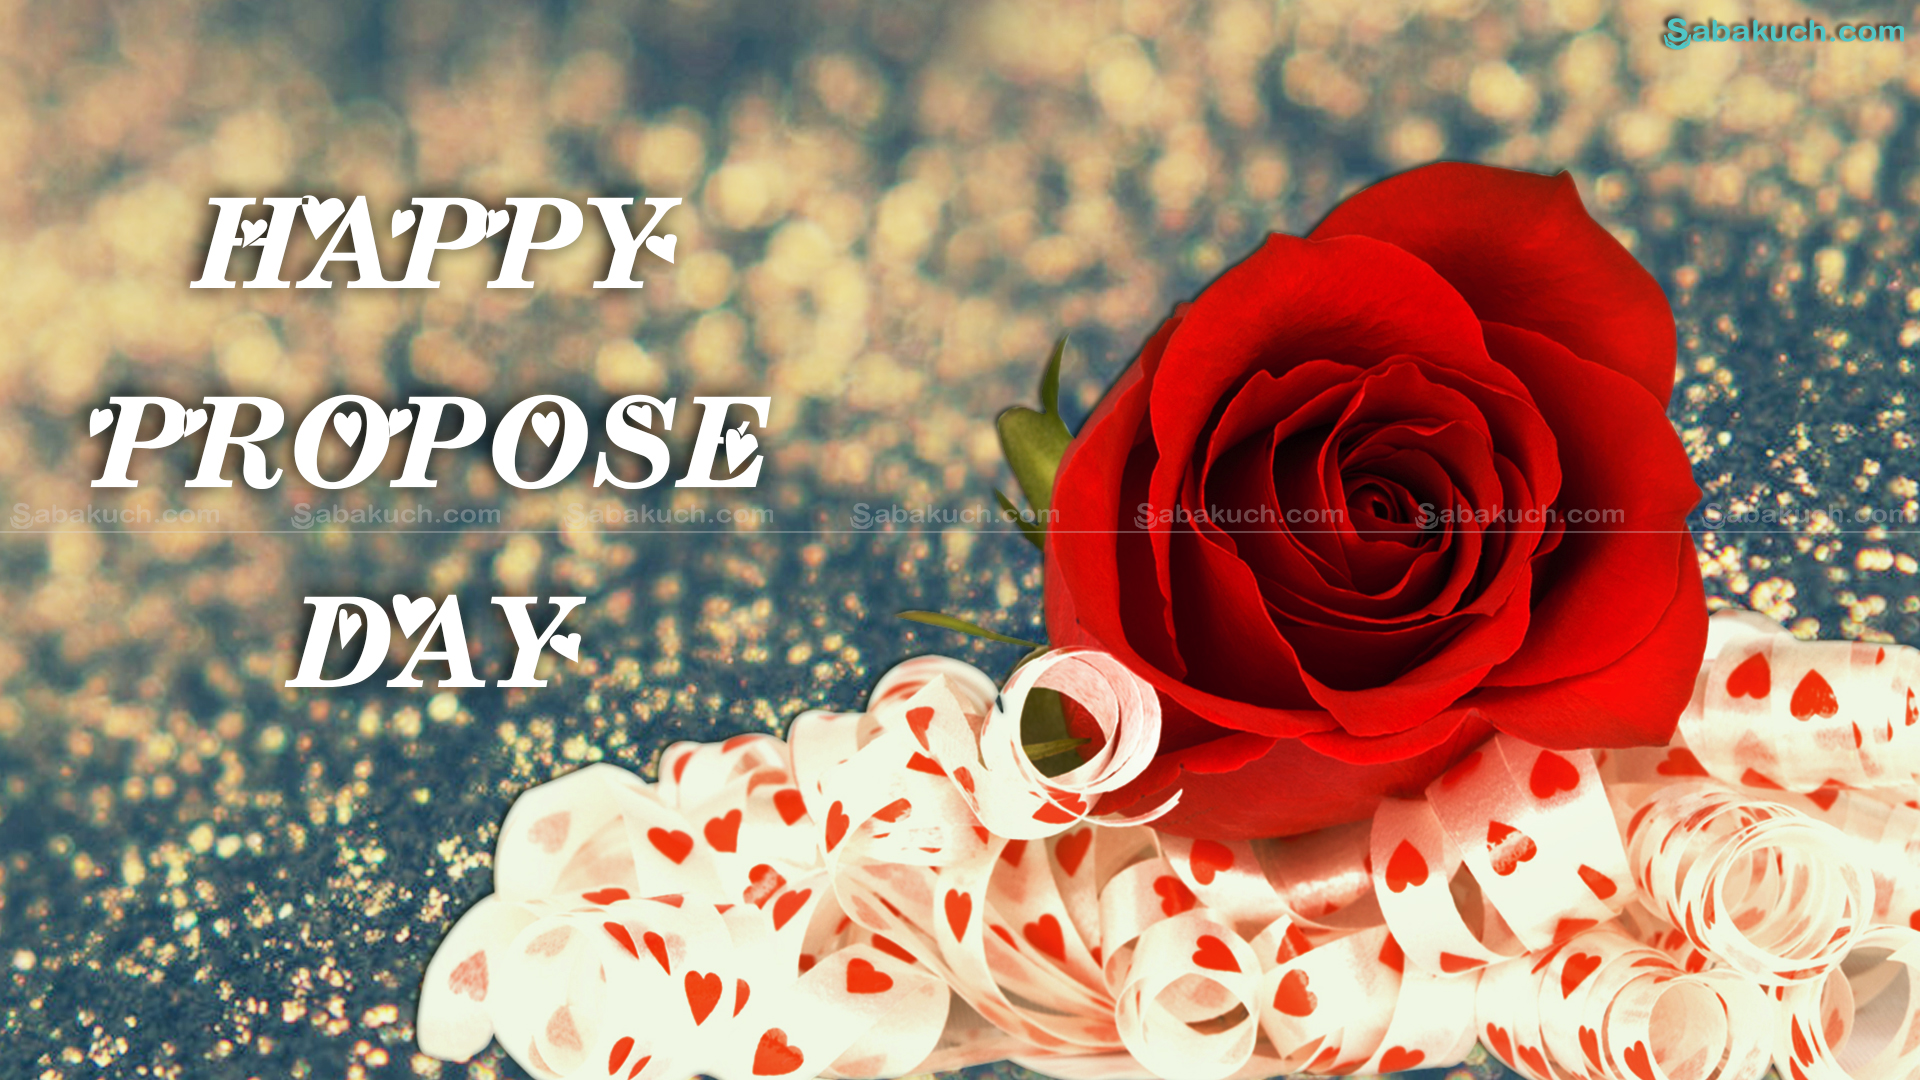 Propose Day feb.,